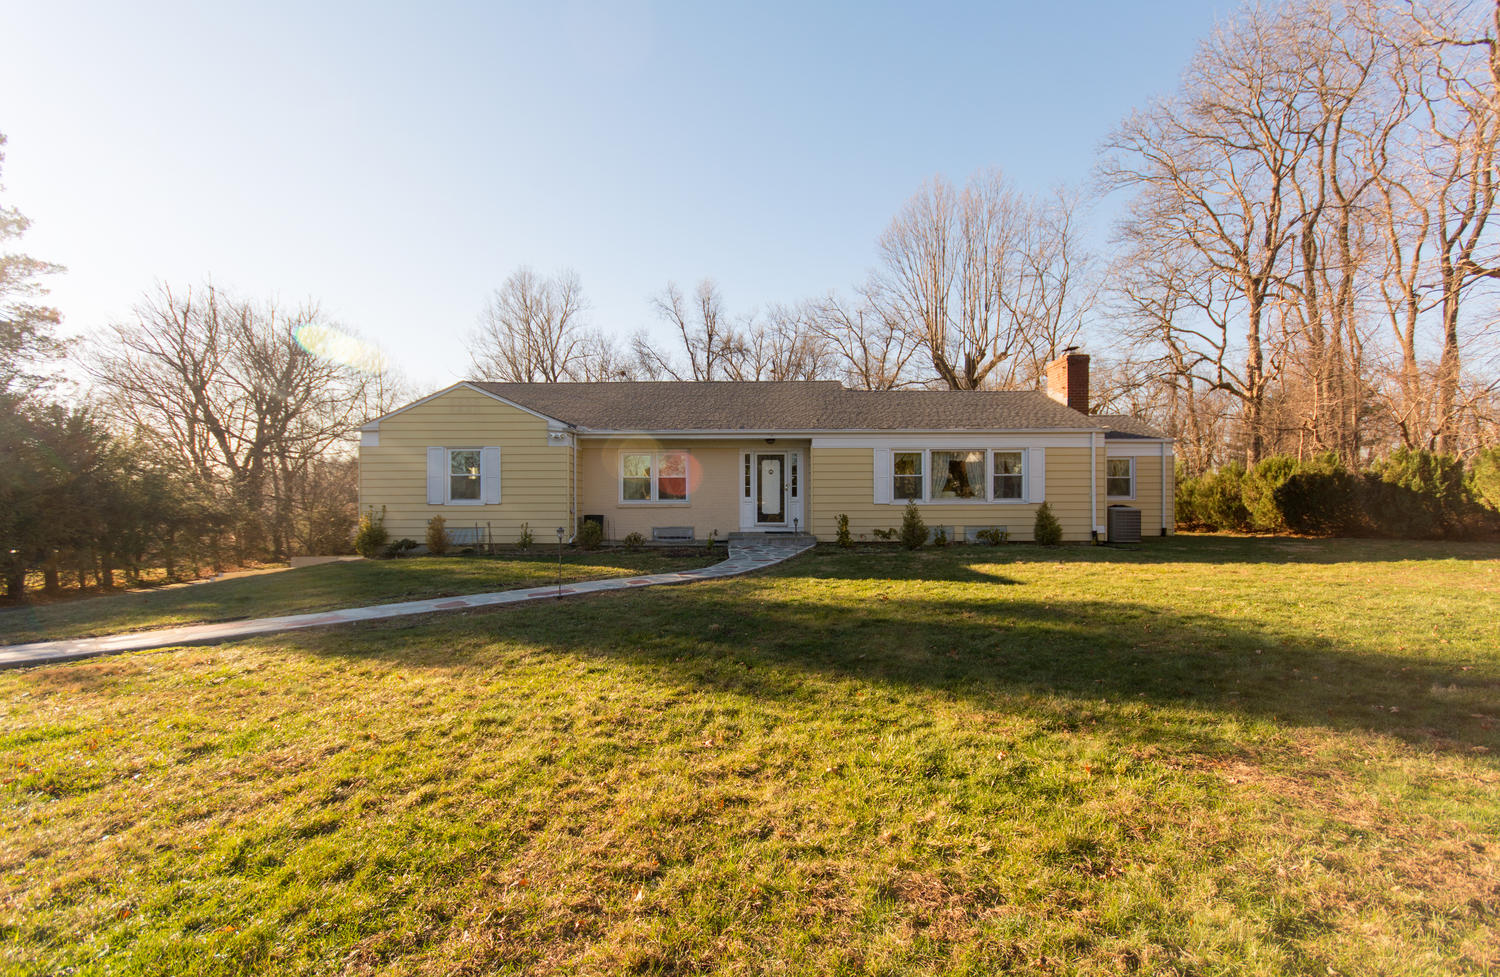 1 Mayfair Road, Elmsford, New York 10523